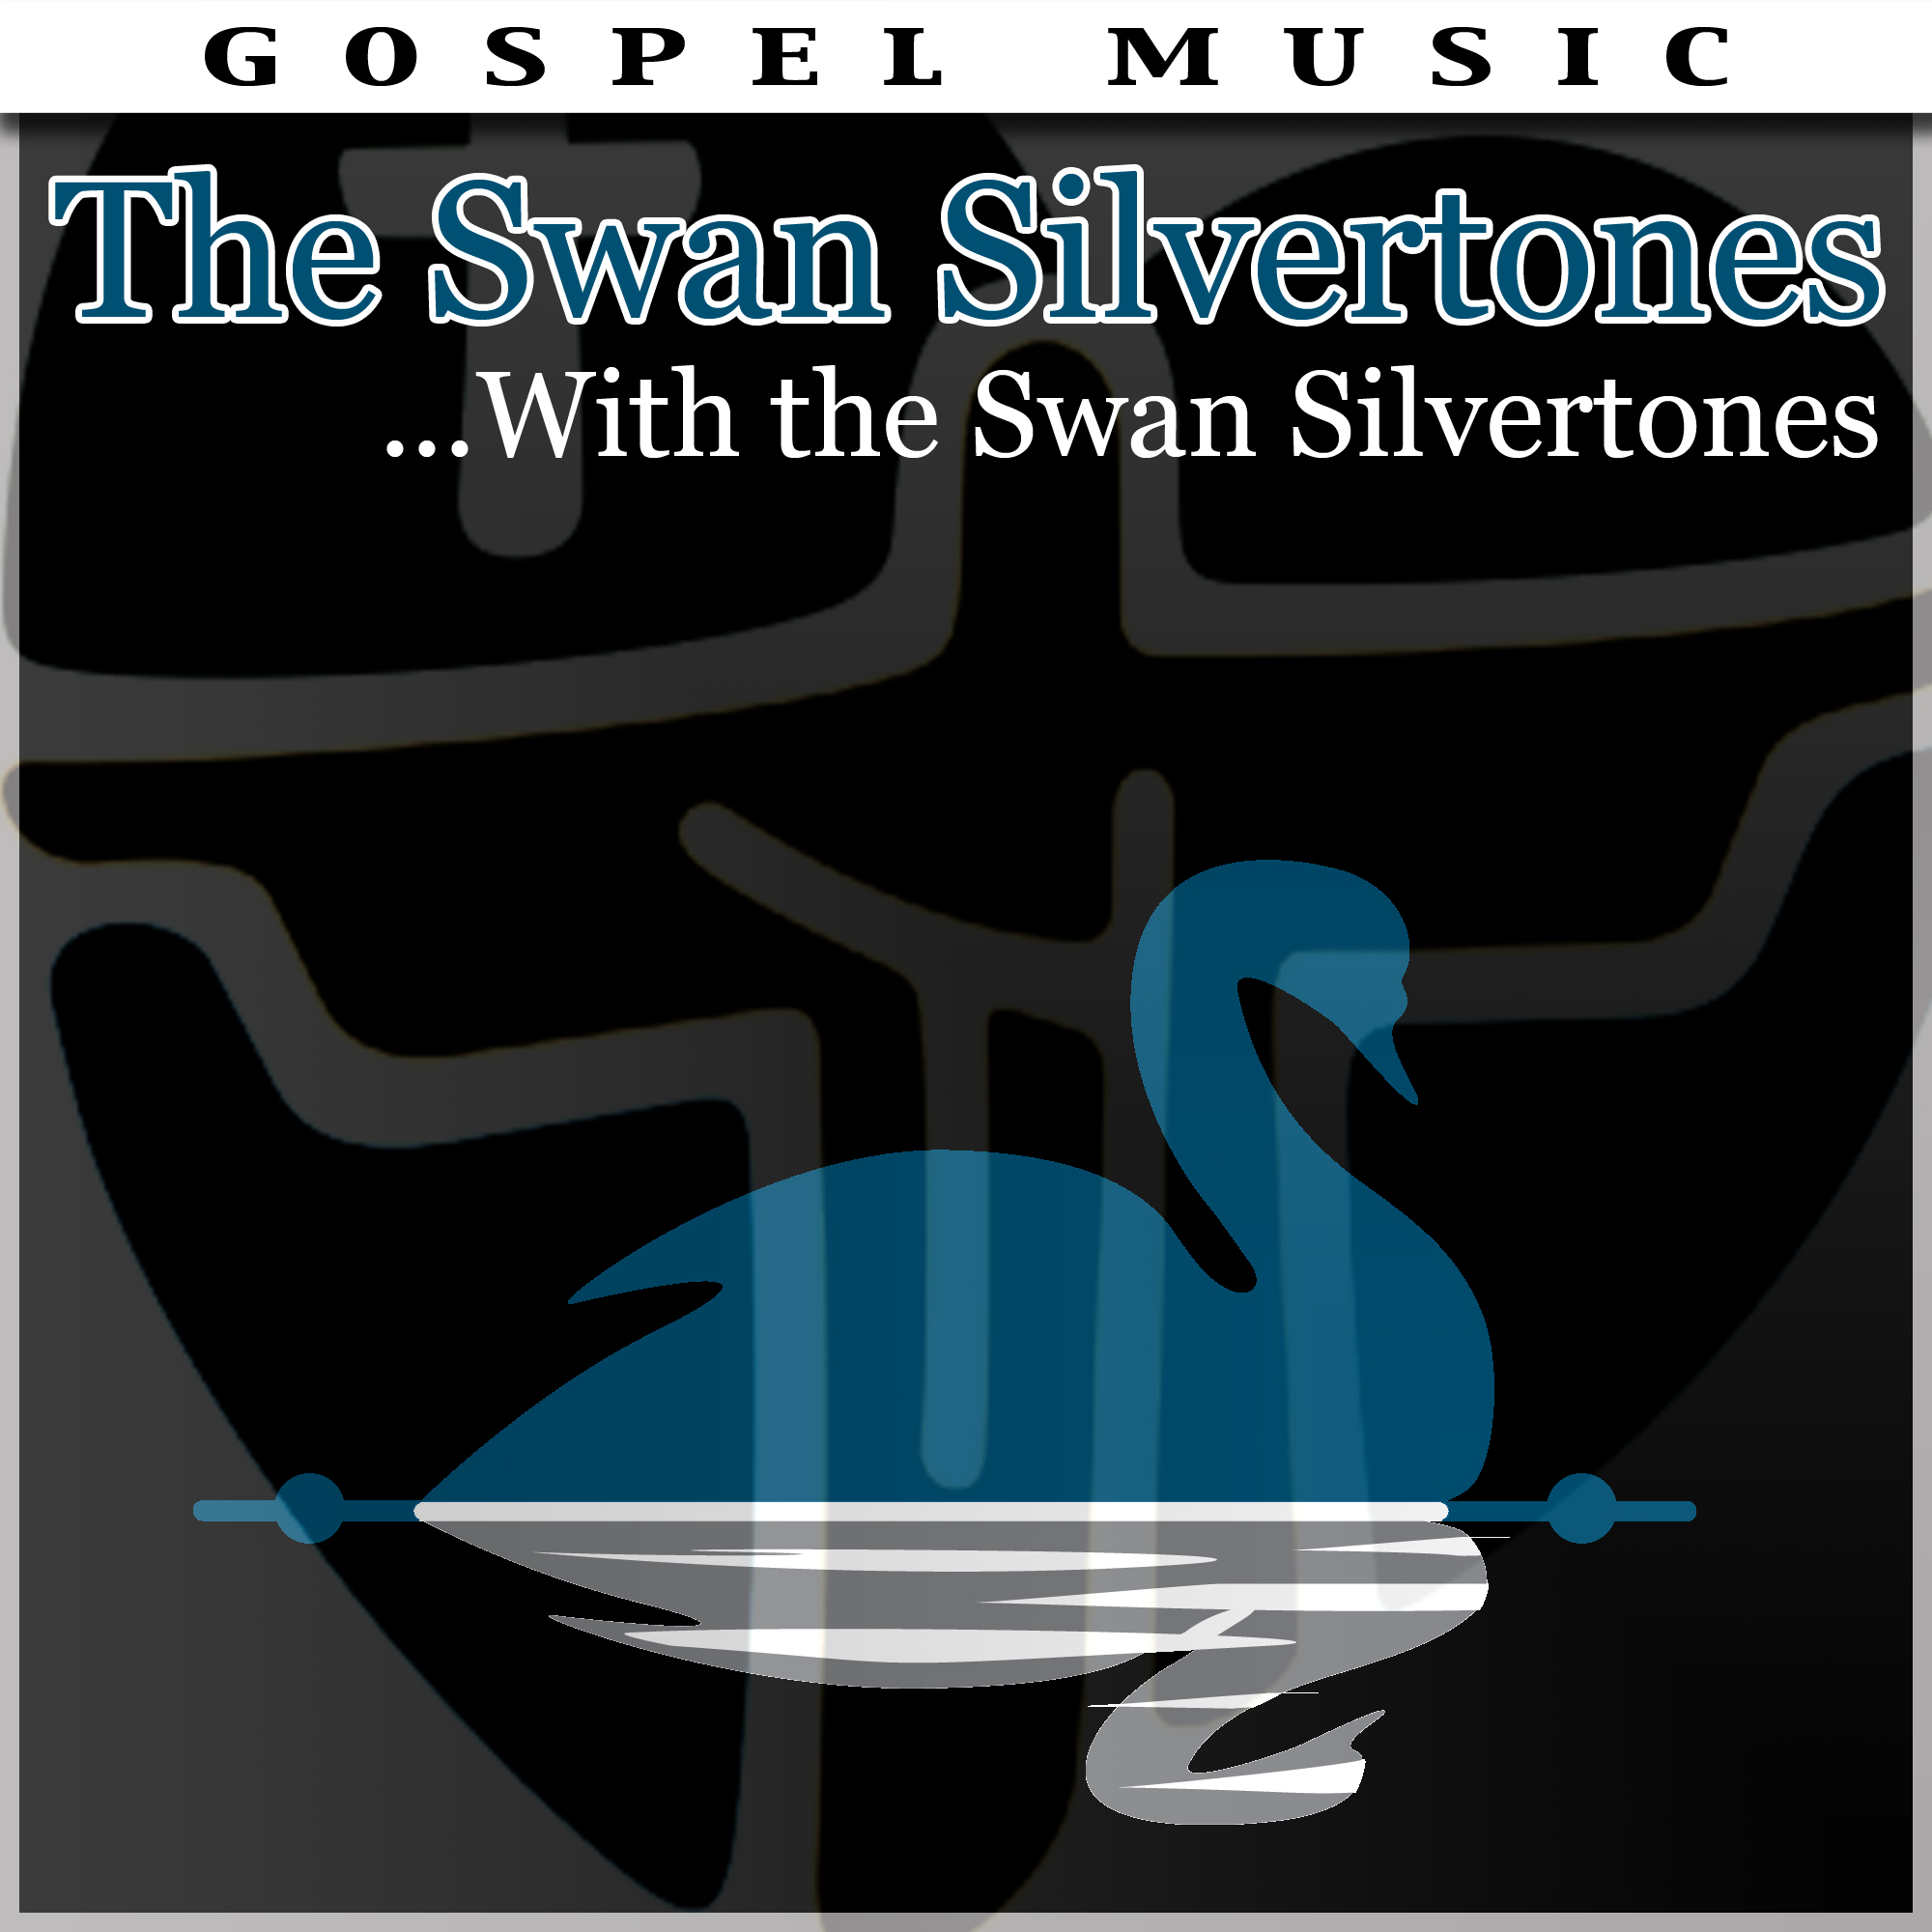 ...With The Swan Silvertones